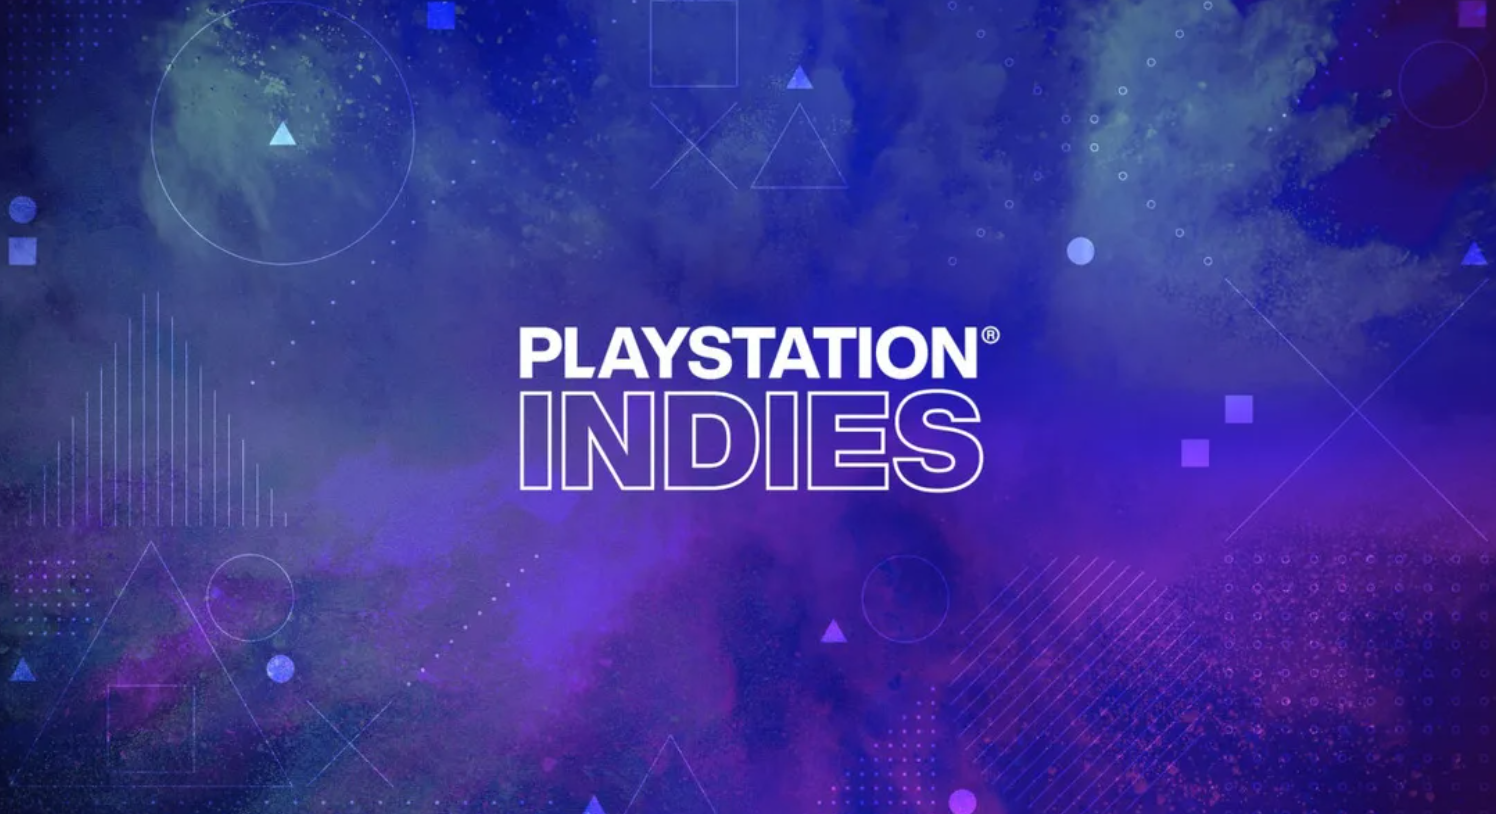 playstation indies.PNG